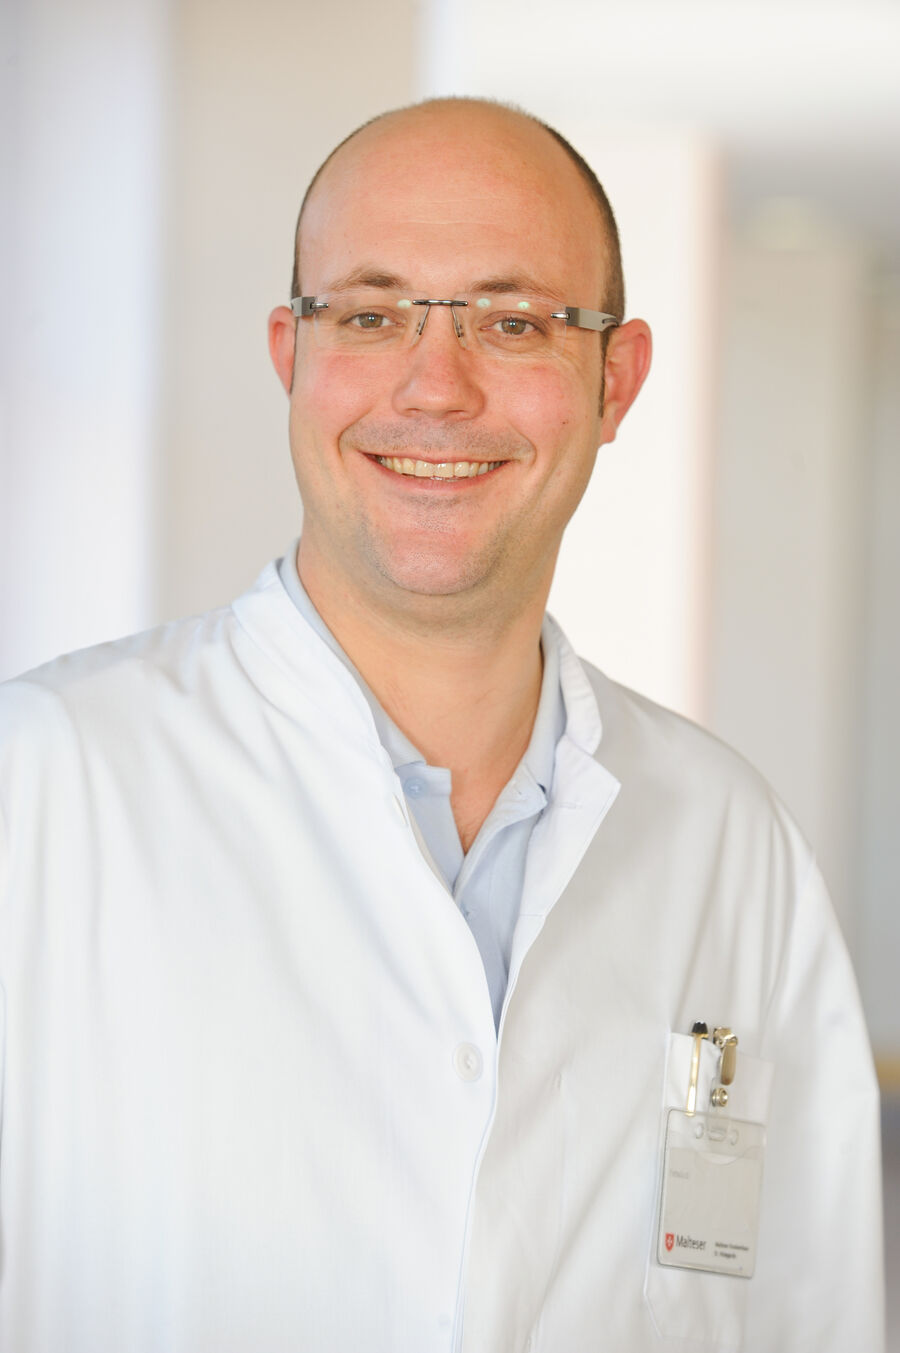 Olaf Jungmann, Facharzt für Urologie, Medikamentöse Tumortherapie, Palliativmedizin Fellow of the European Board of Urology (F.E.B.U.), Leitender Oberarzt der Urologischen Klinik Lindenthal St. Hildegardis Krankenhaus